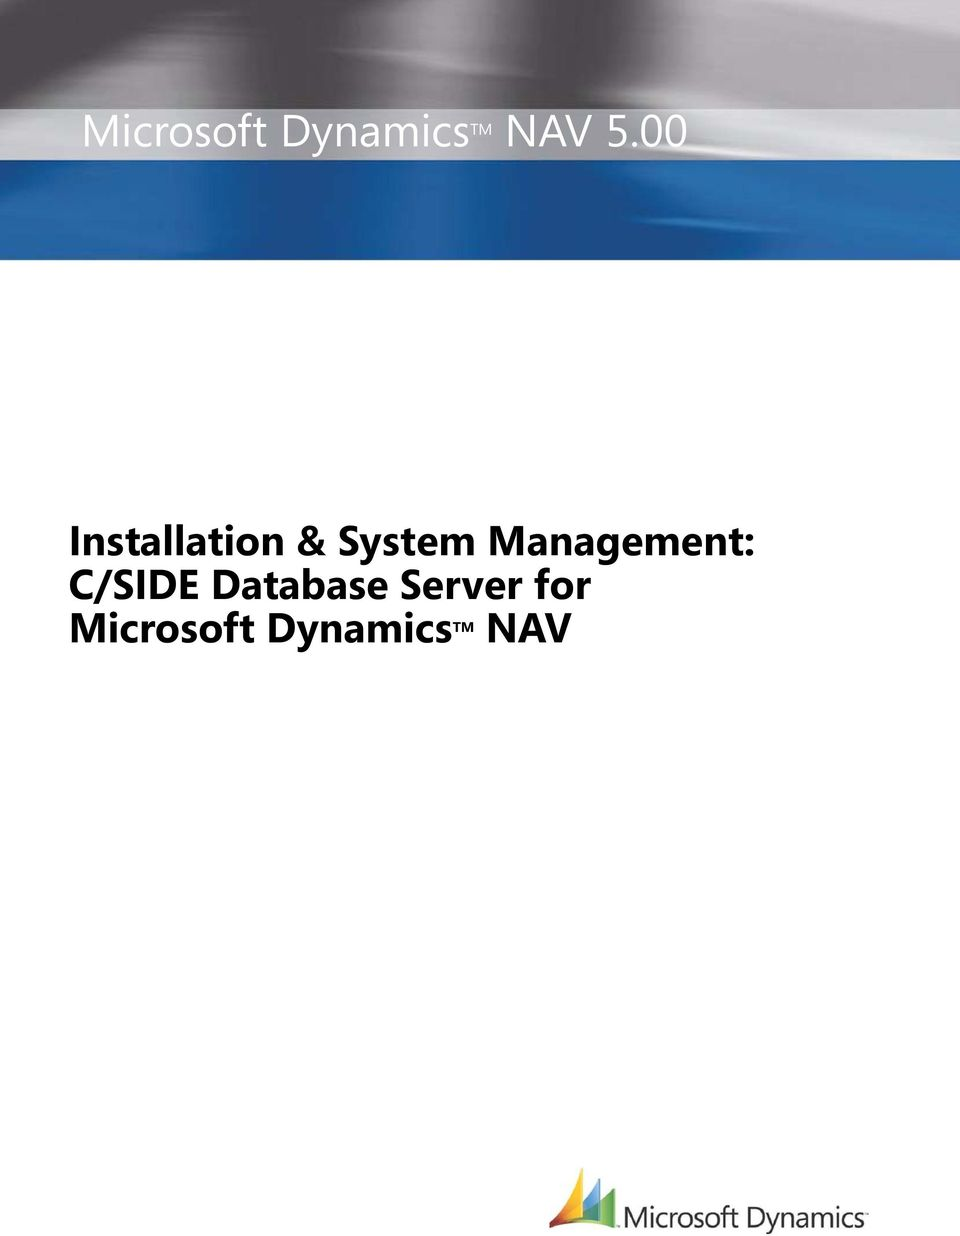 Management: C/SIDE Database